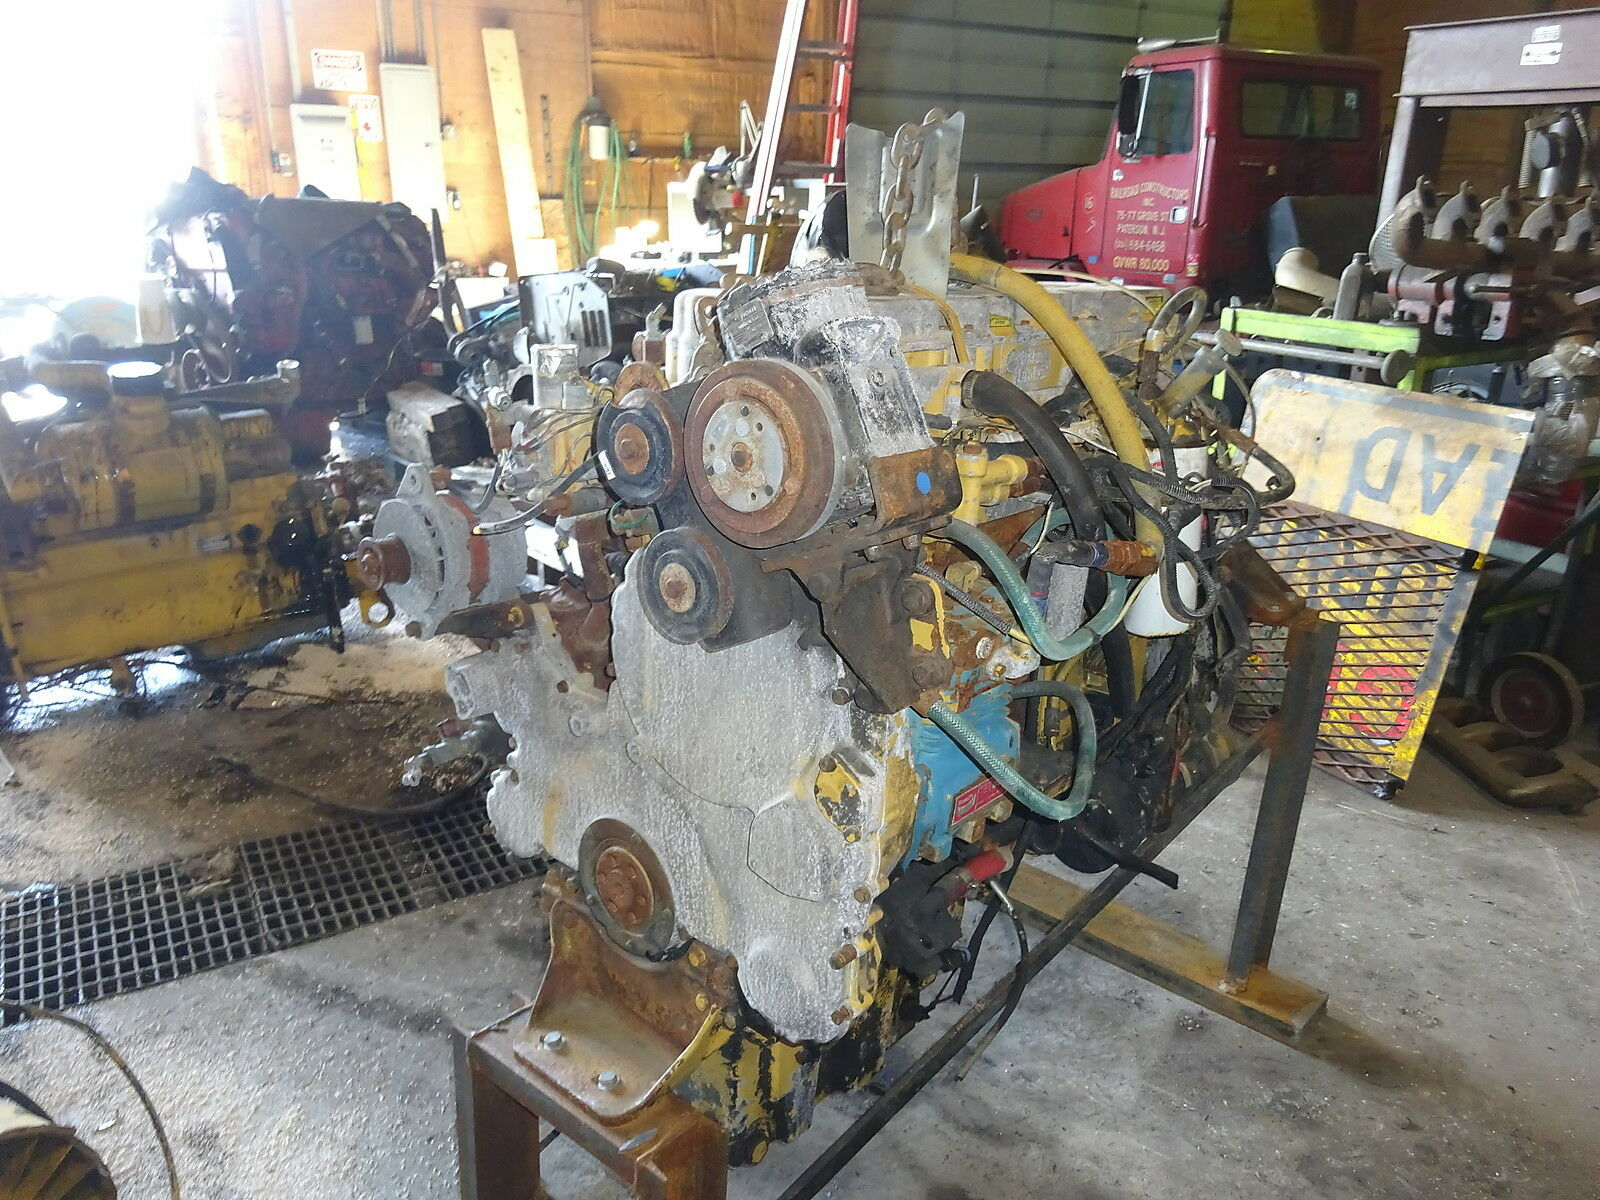 Caterpillar 3176 Diesel Engine TAKEOUT CORE JAKES 350 HP 9CK CAT Truck 1 of  5Only 1 available See More